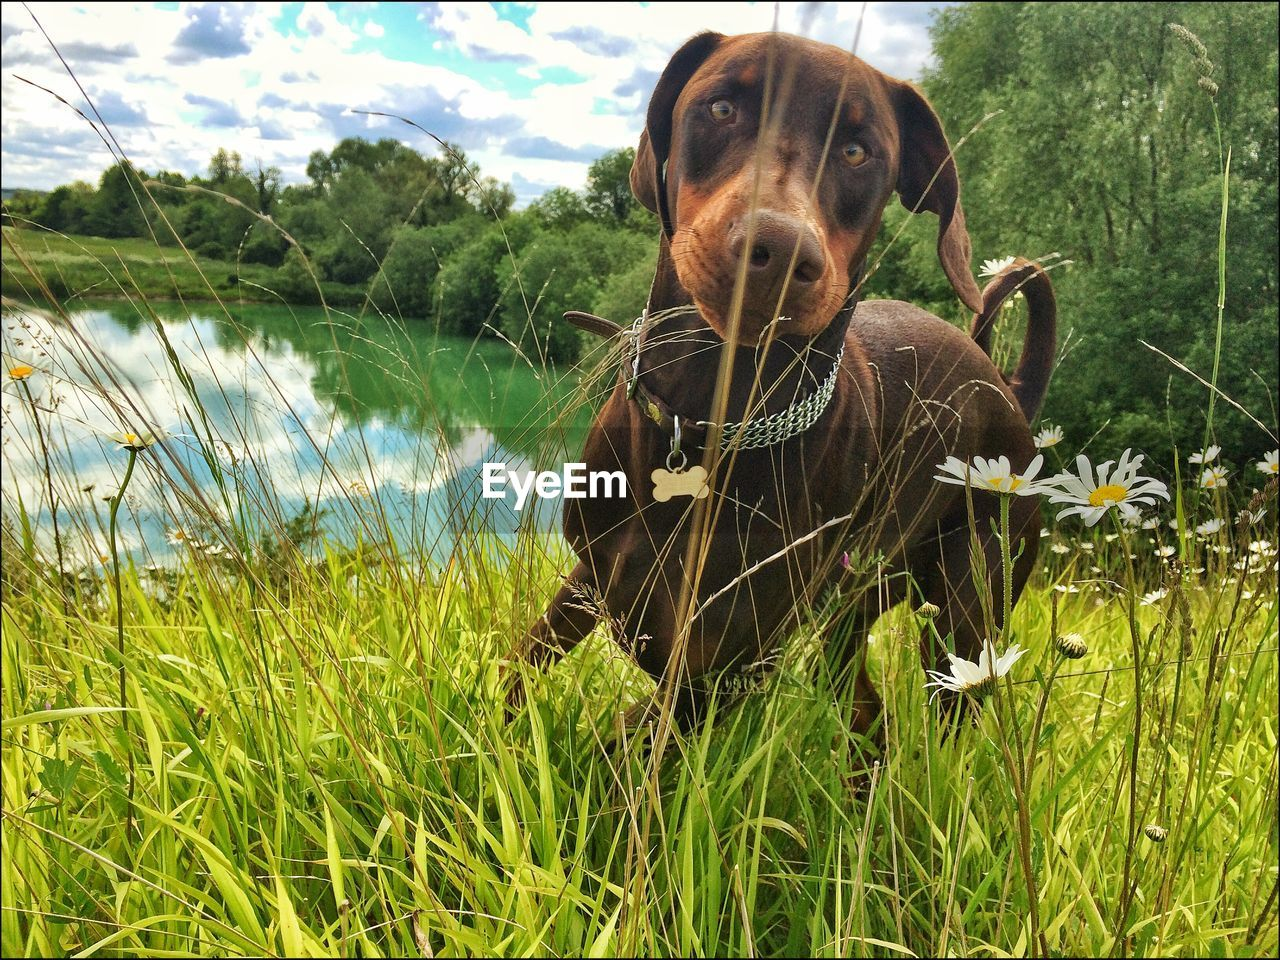 grass, one animal, dog, domestic animals, animal themes, mammal, pets, nature, growth, day, green color, outdoors, lake, field, no people, water, plant, beauty in nature, flower, close-up